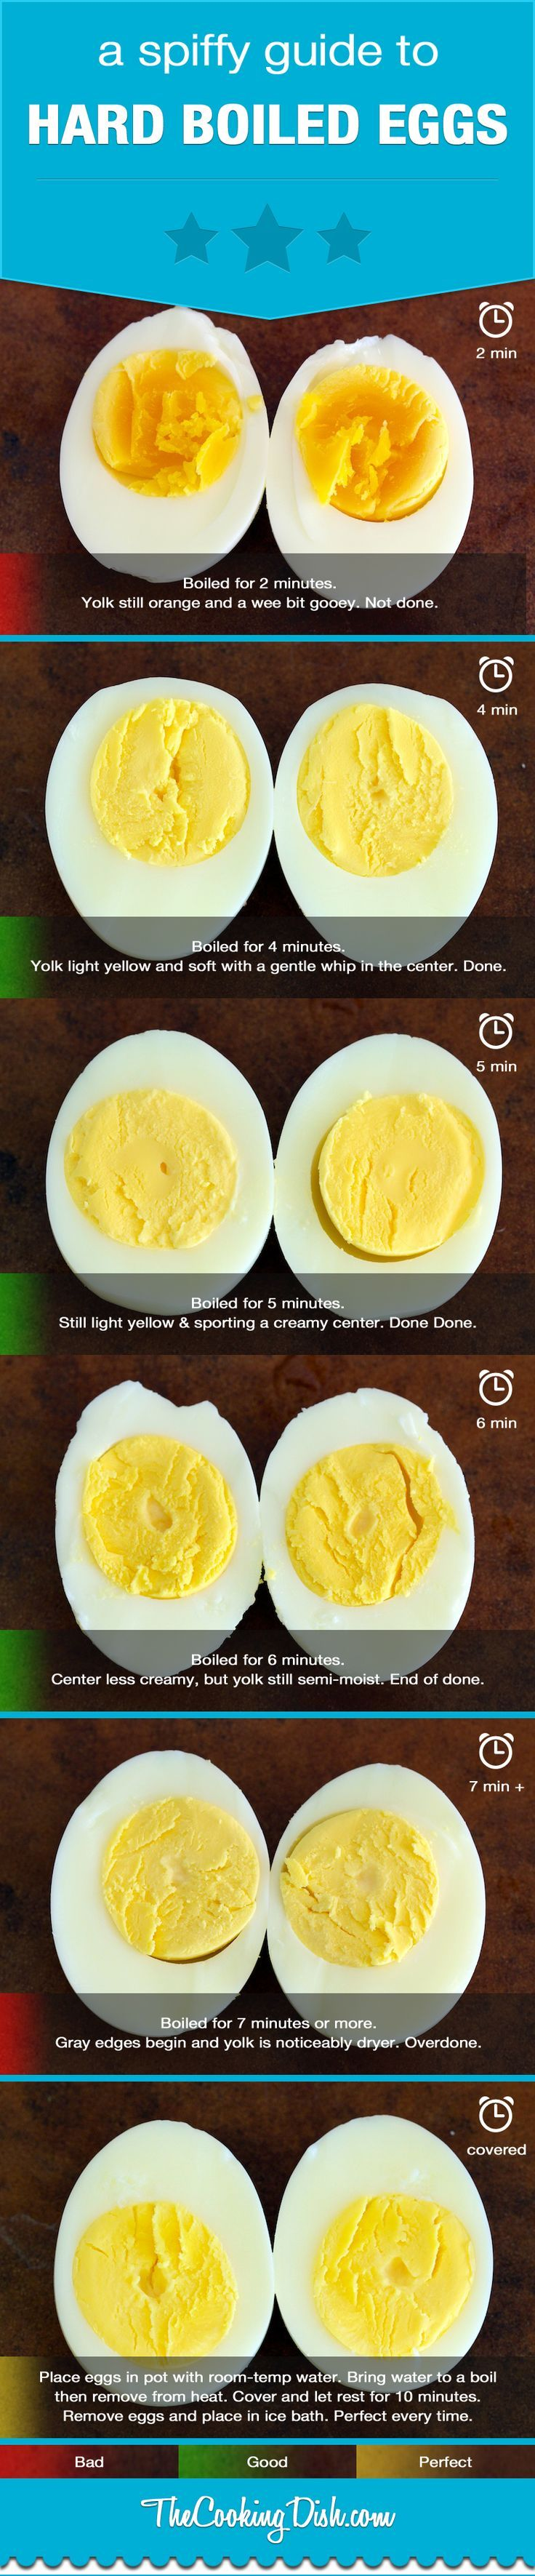 best hard boiled eggs 142 best images about need to cooking on 31737